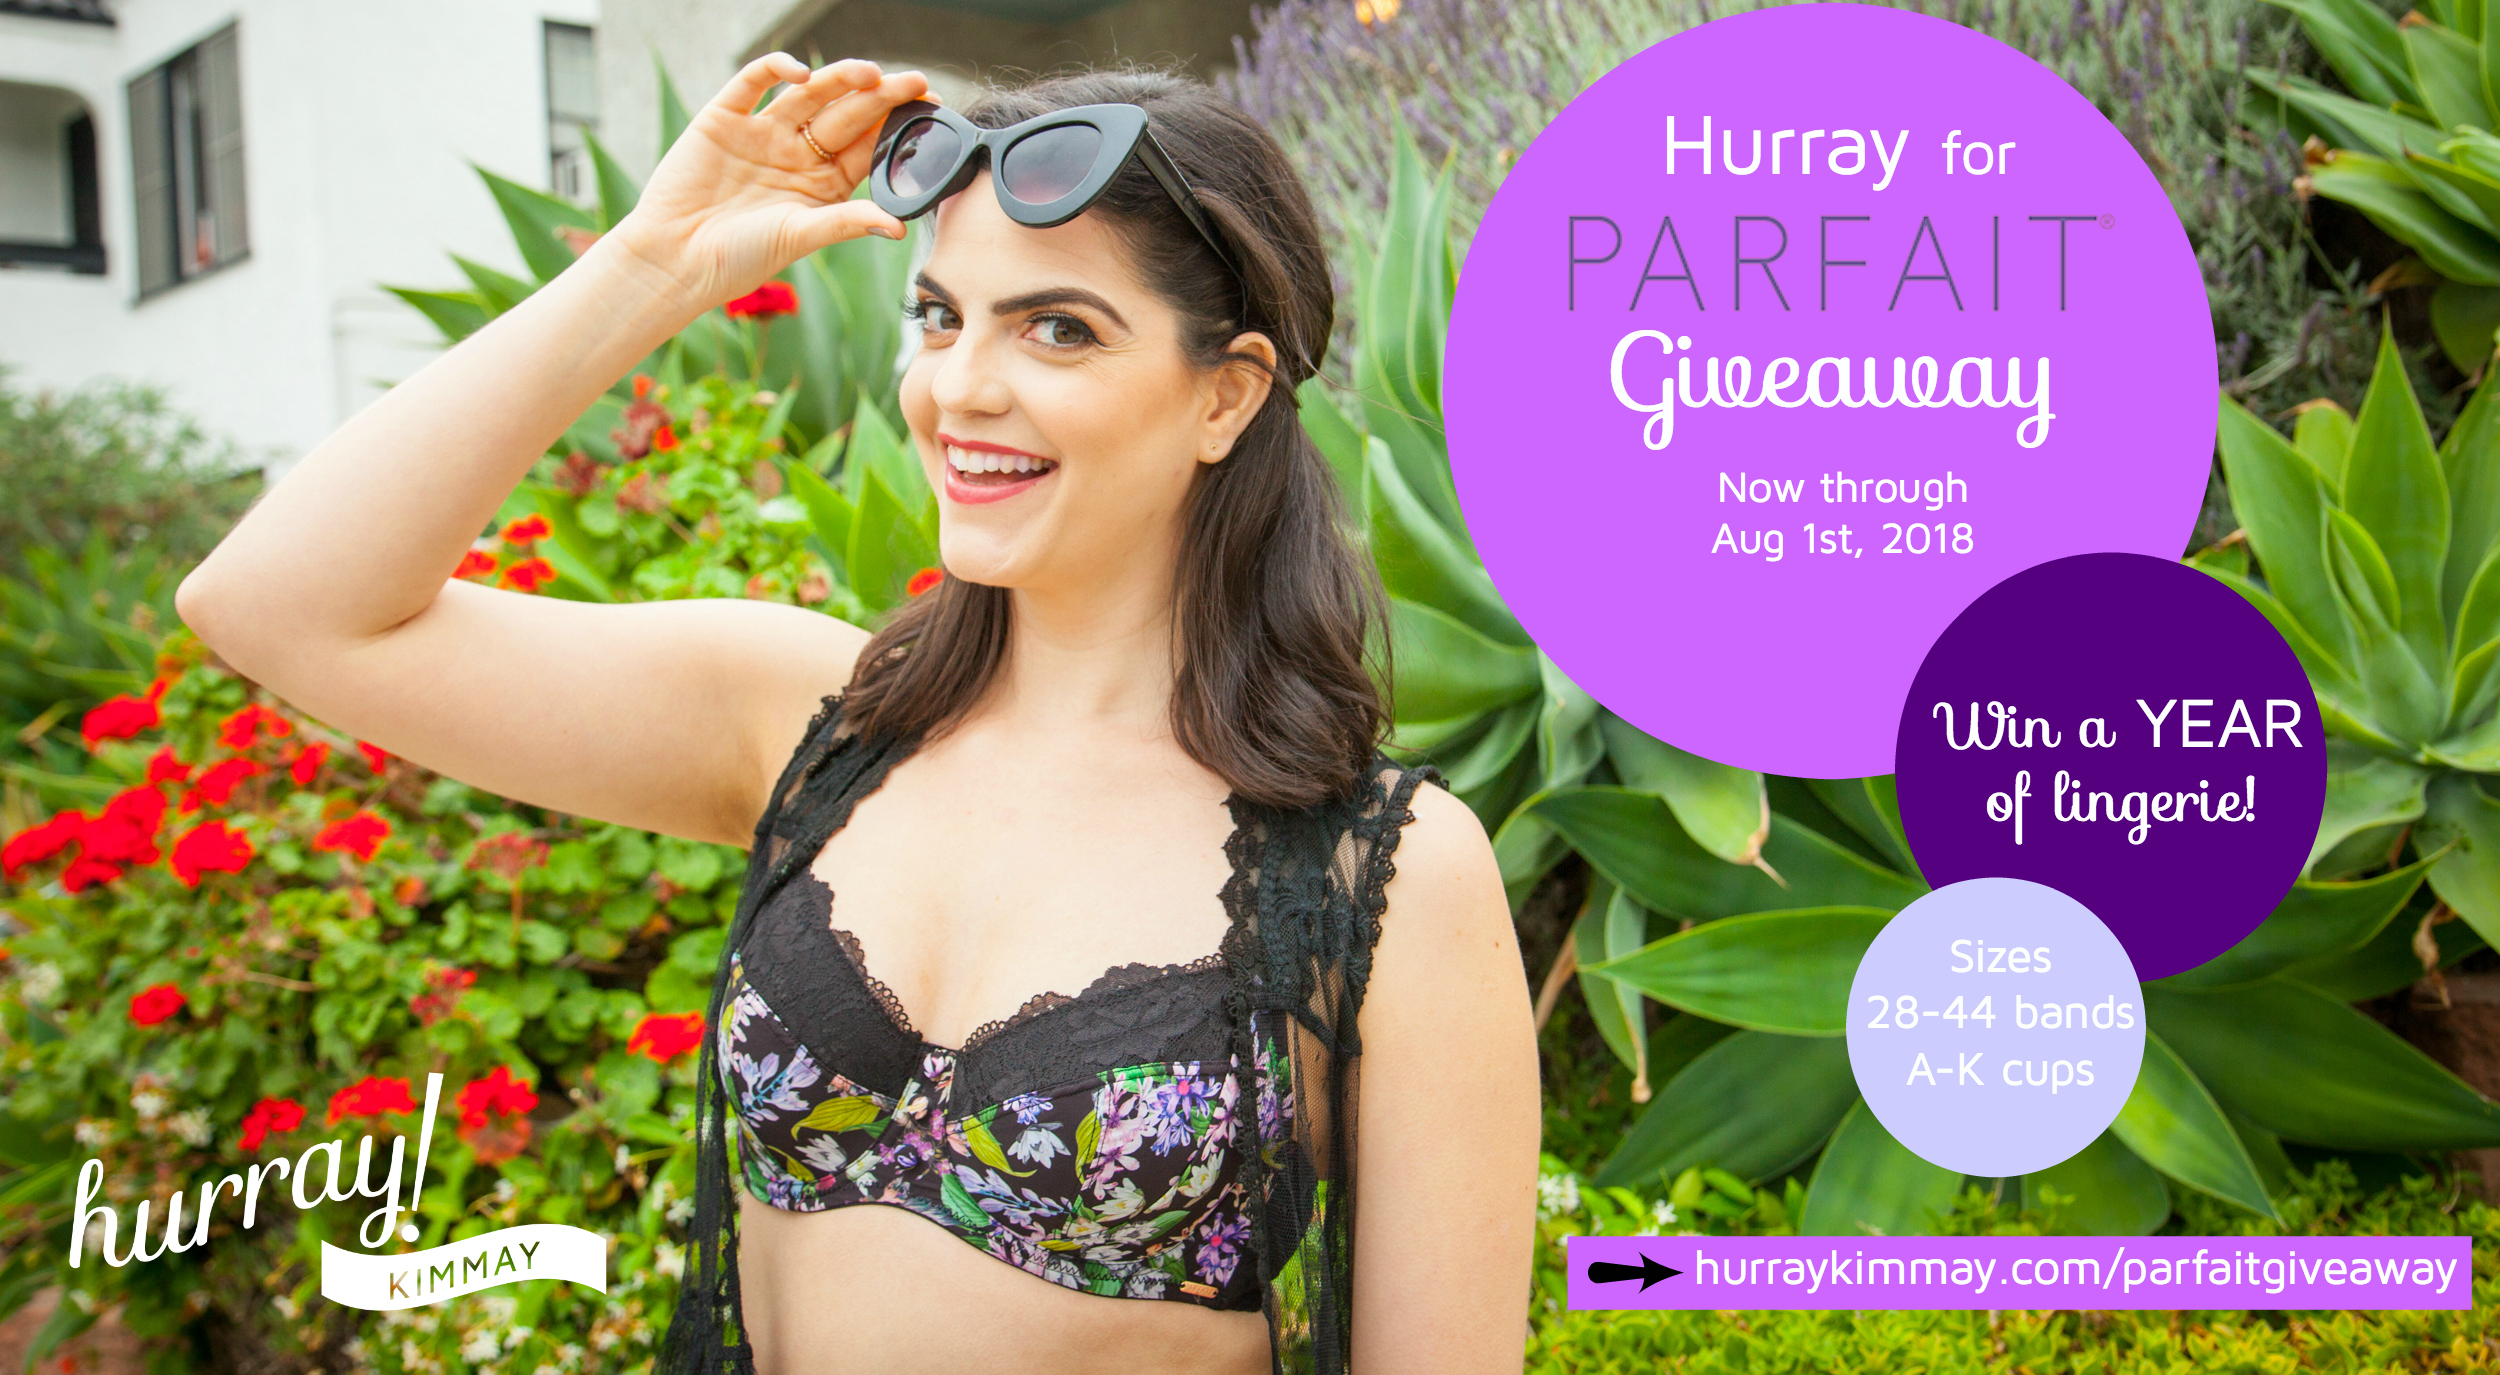 Enter to ein the Hurray for Parfait Giveaway today and win a year of lingerie!